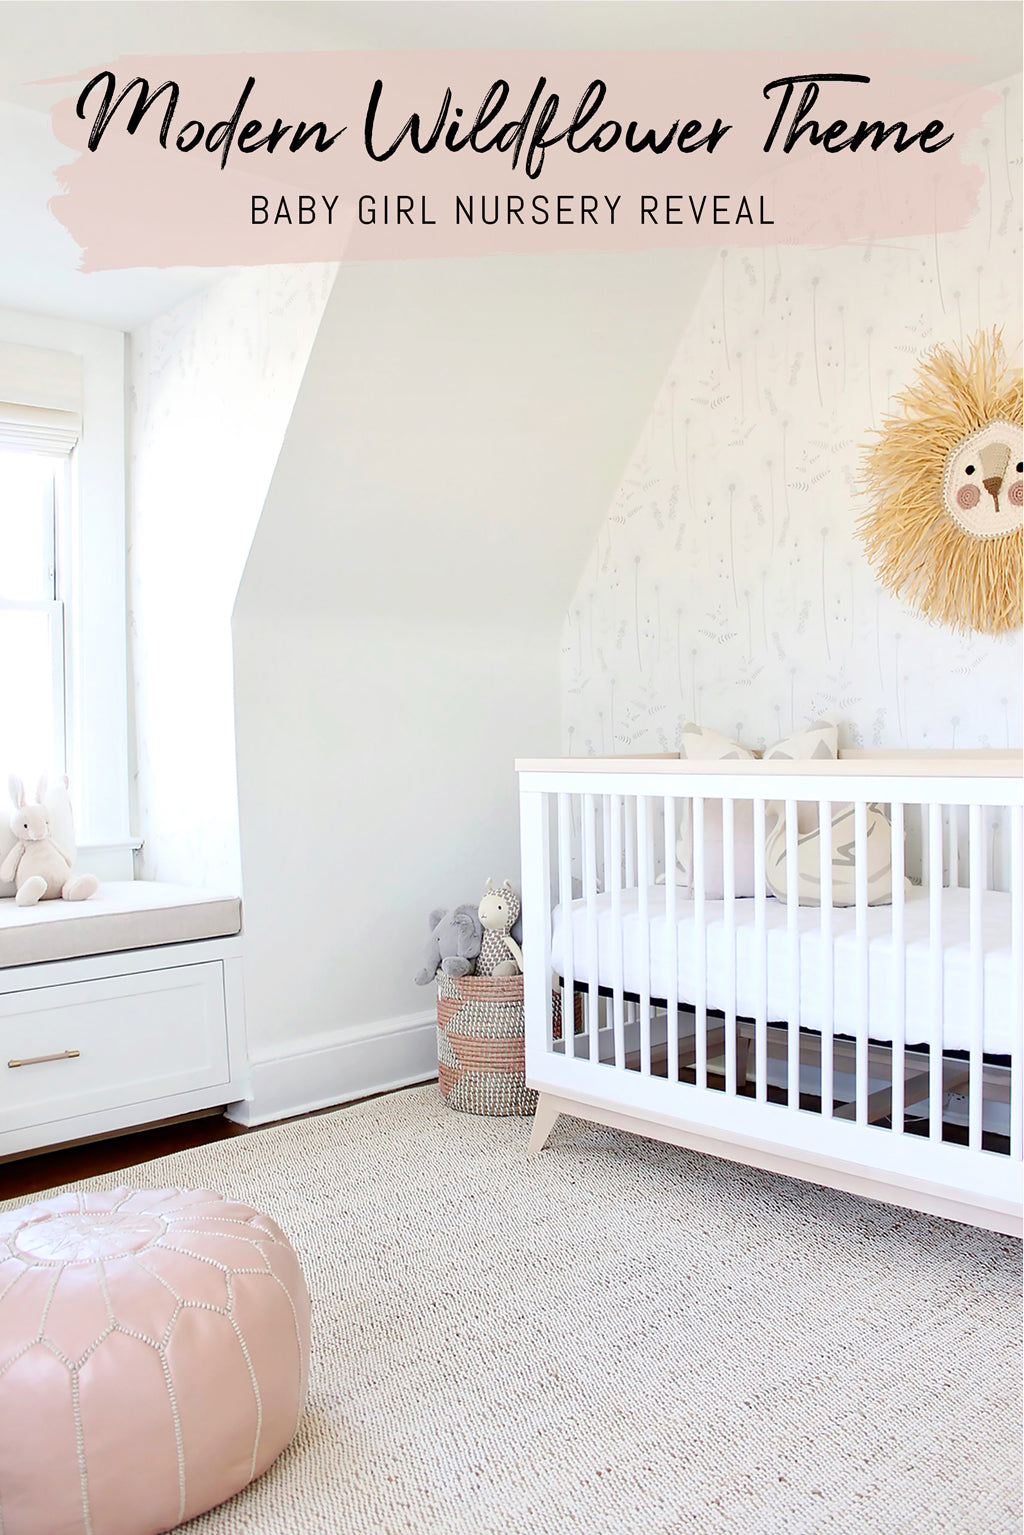 Modern wildflower theme baby girl bedroom interior design in white, blush pink and grey colors